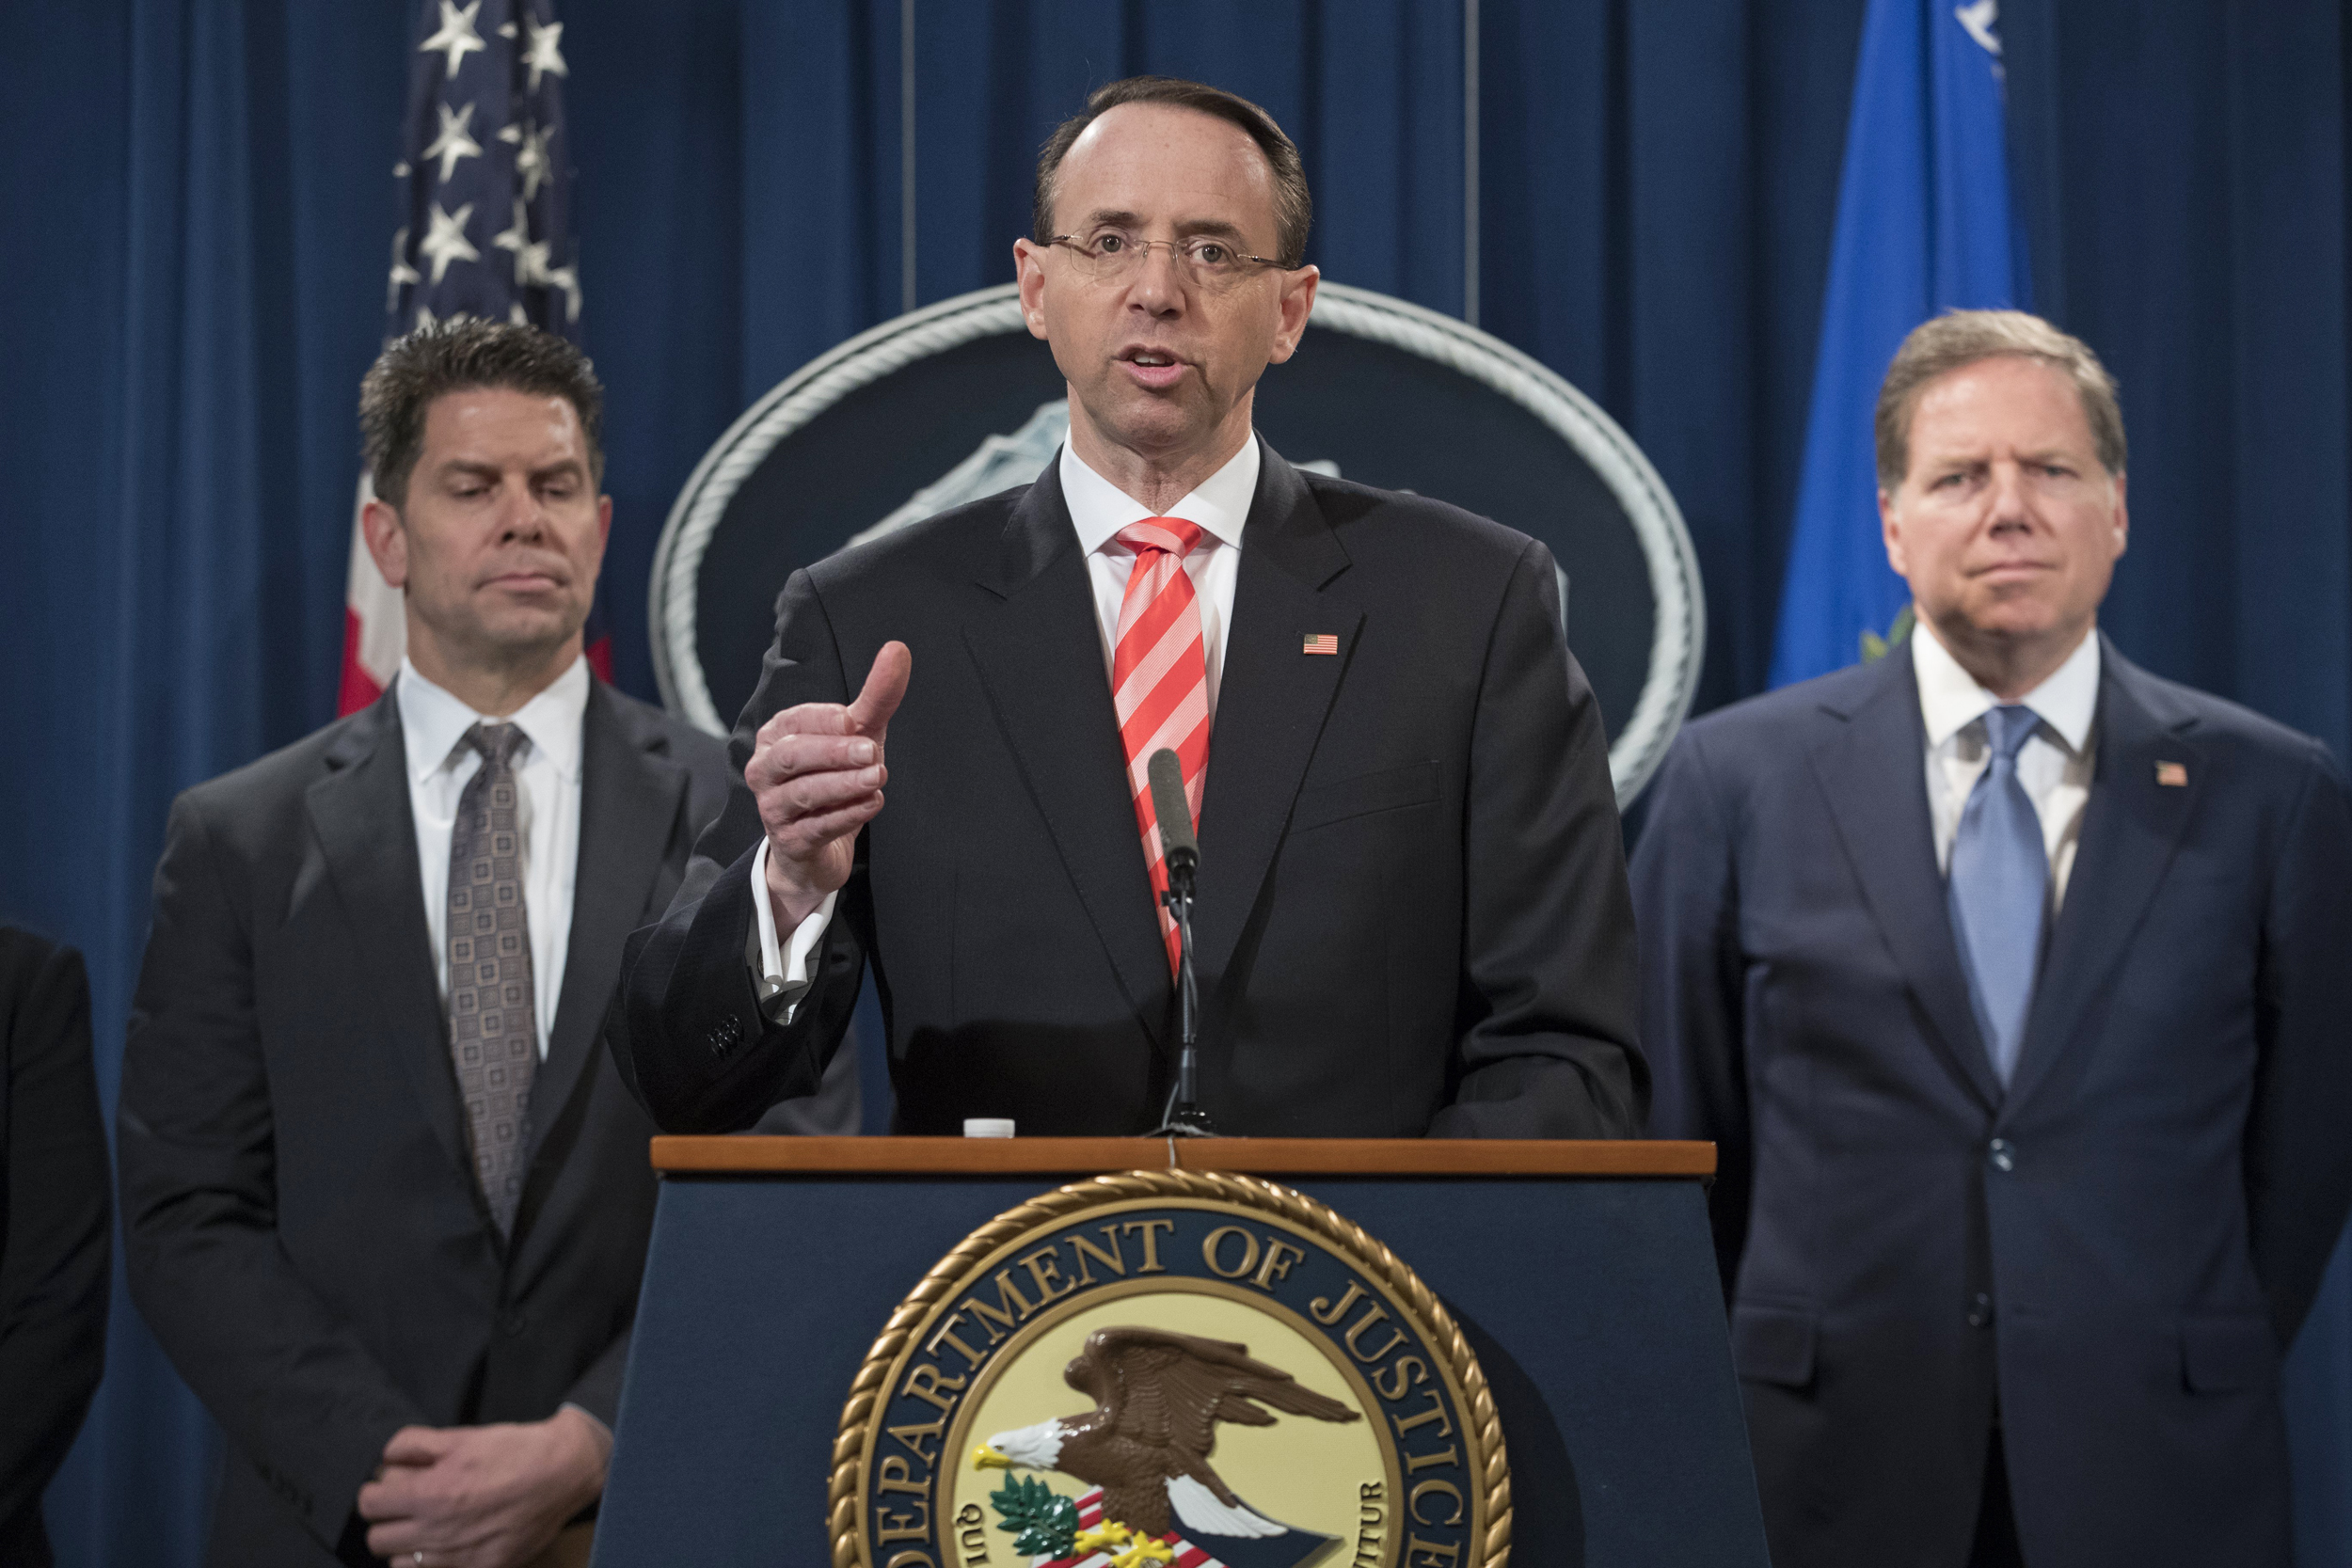 'Here-I-stand':-Rosenstein-tells-confidants-he-is-prepared-to-be-fired